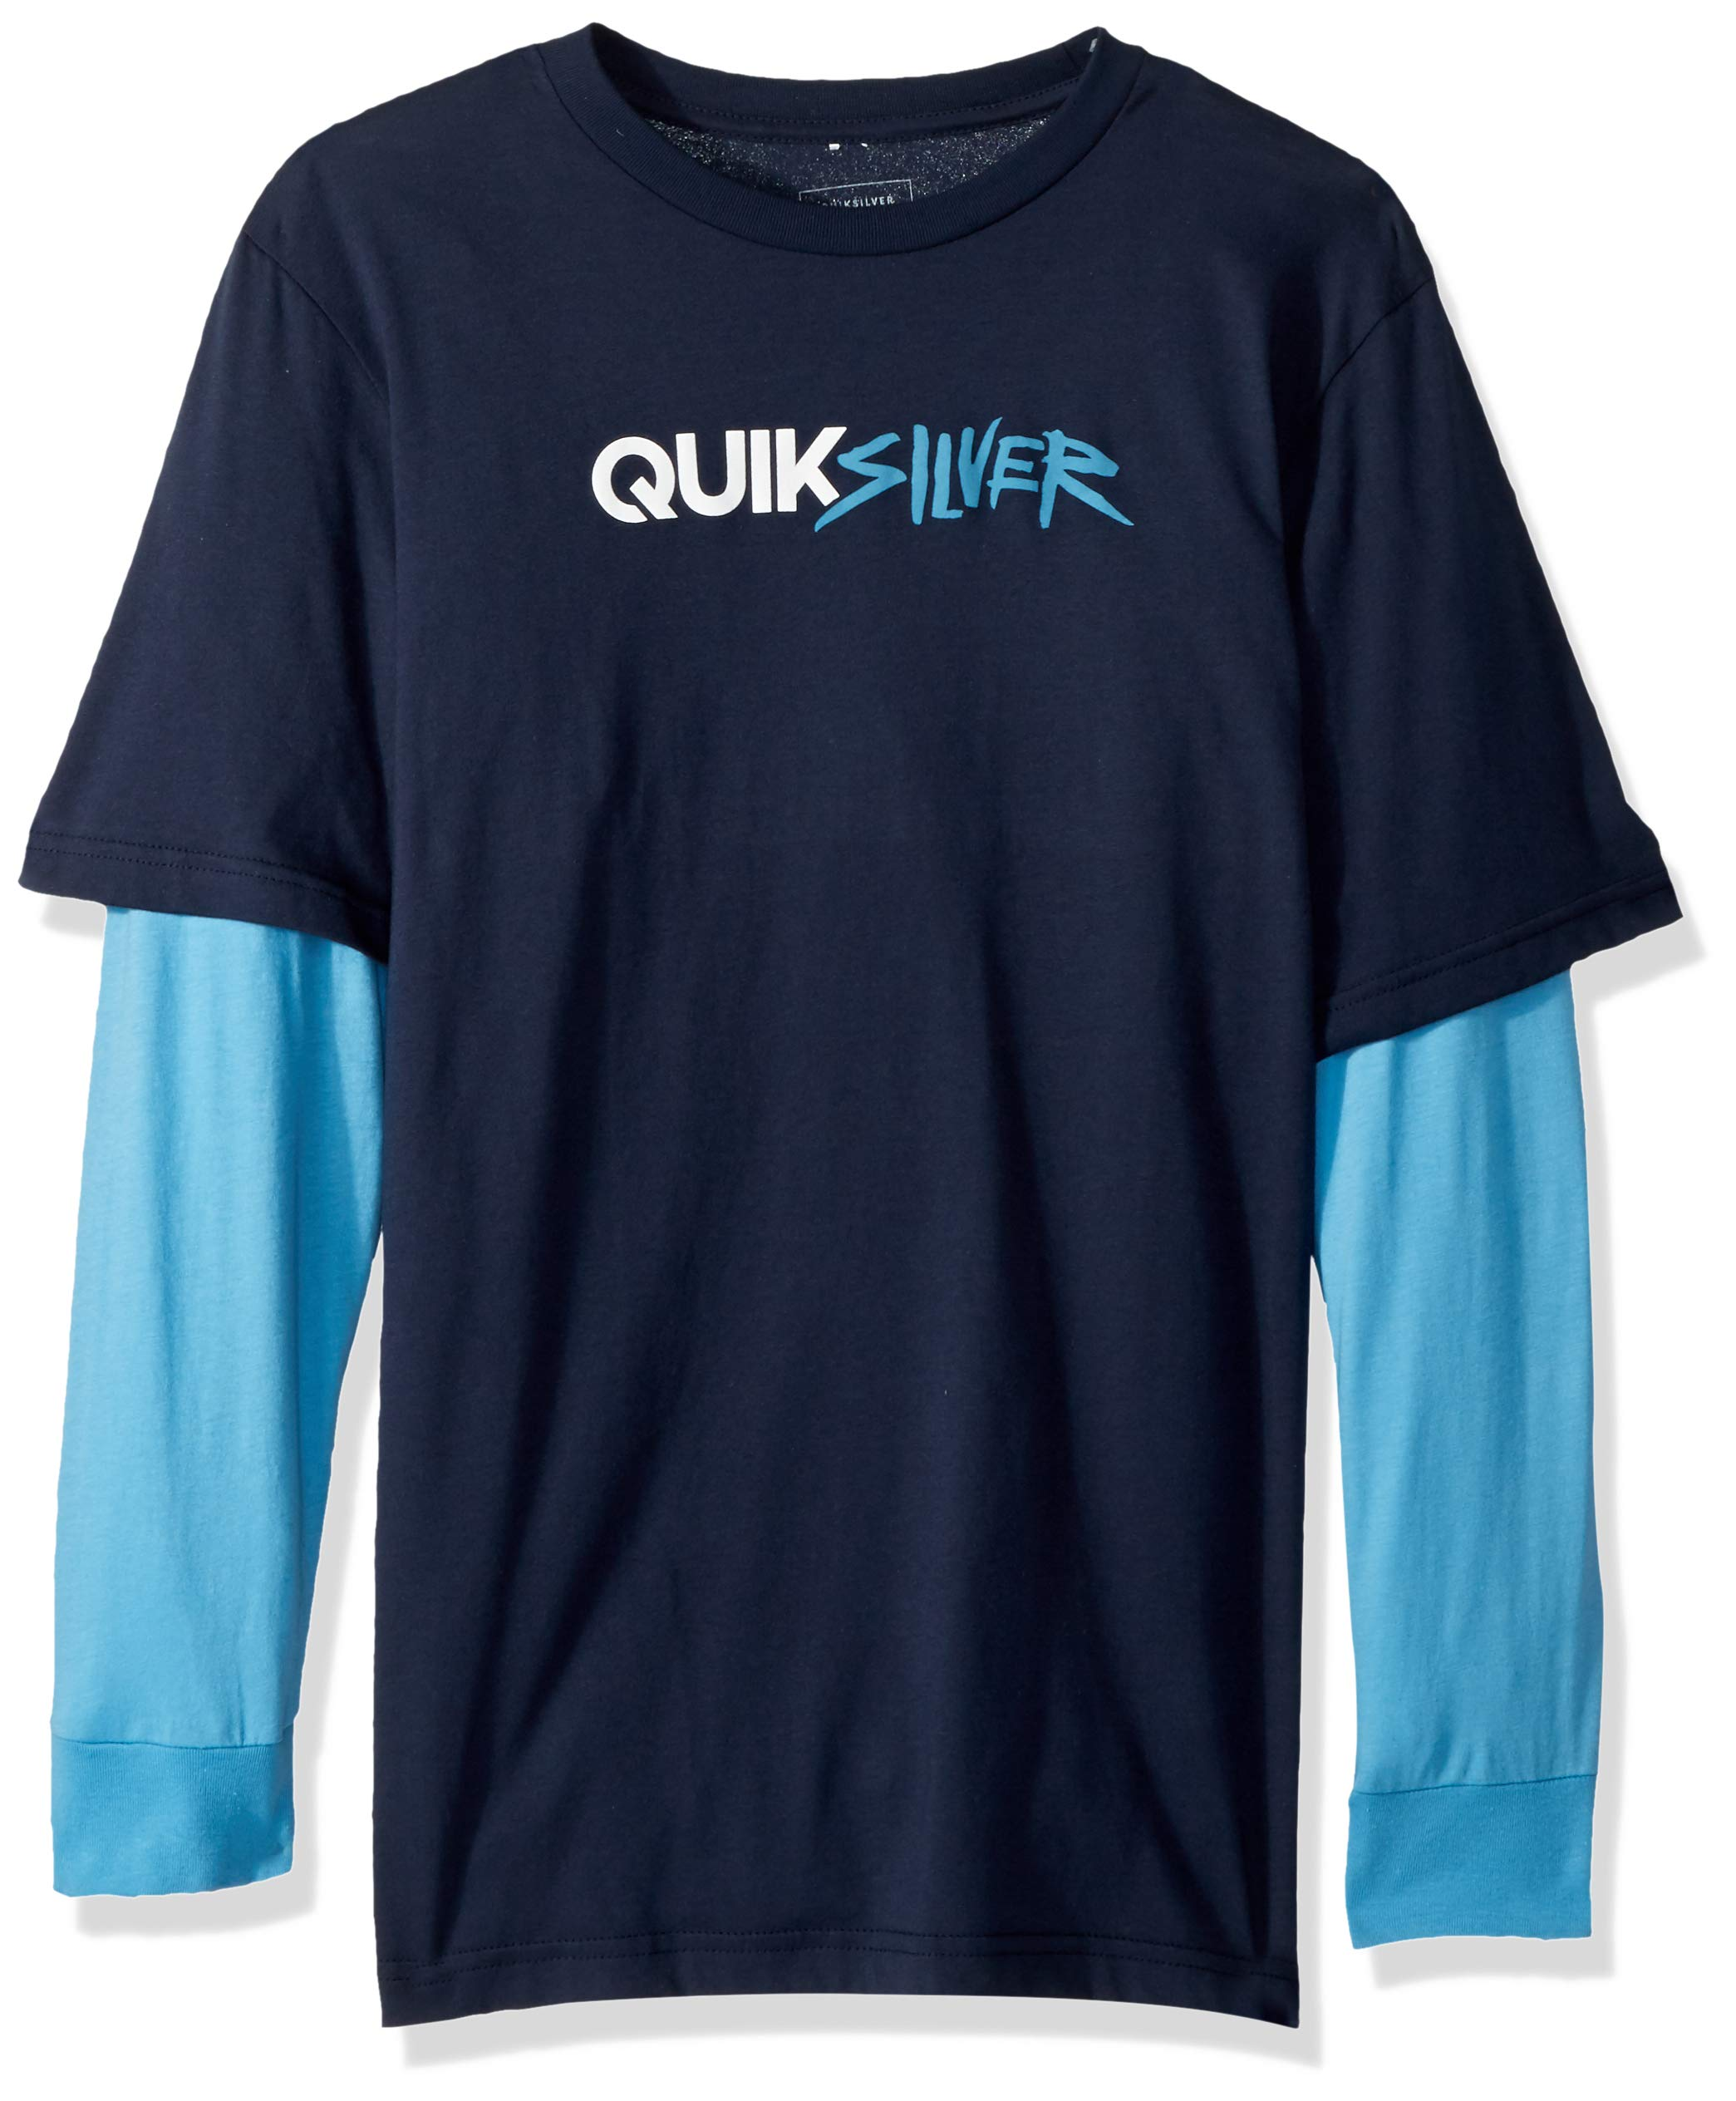 Quiksilver Big Boys' Opposites Attract Youth Long Sleeve Tee Shirt, Navy Blazer, M/12